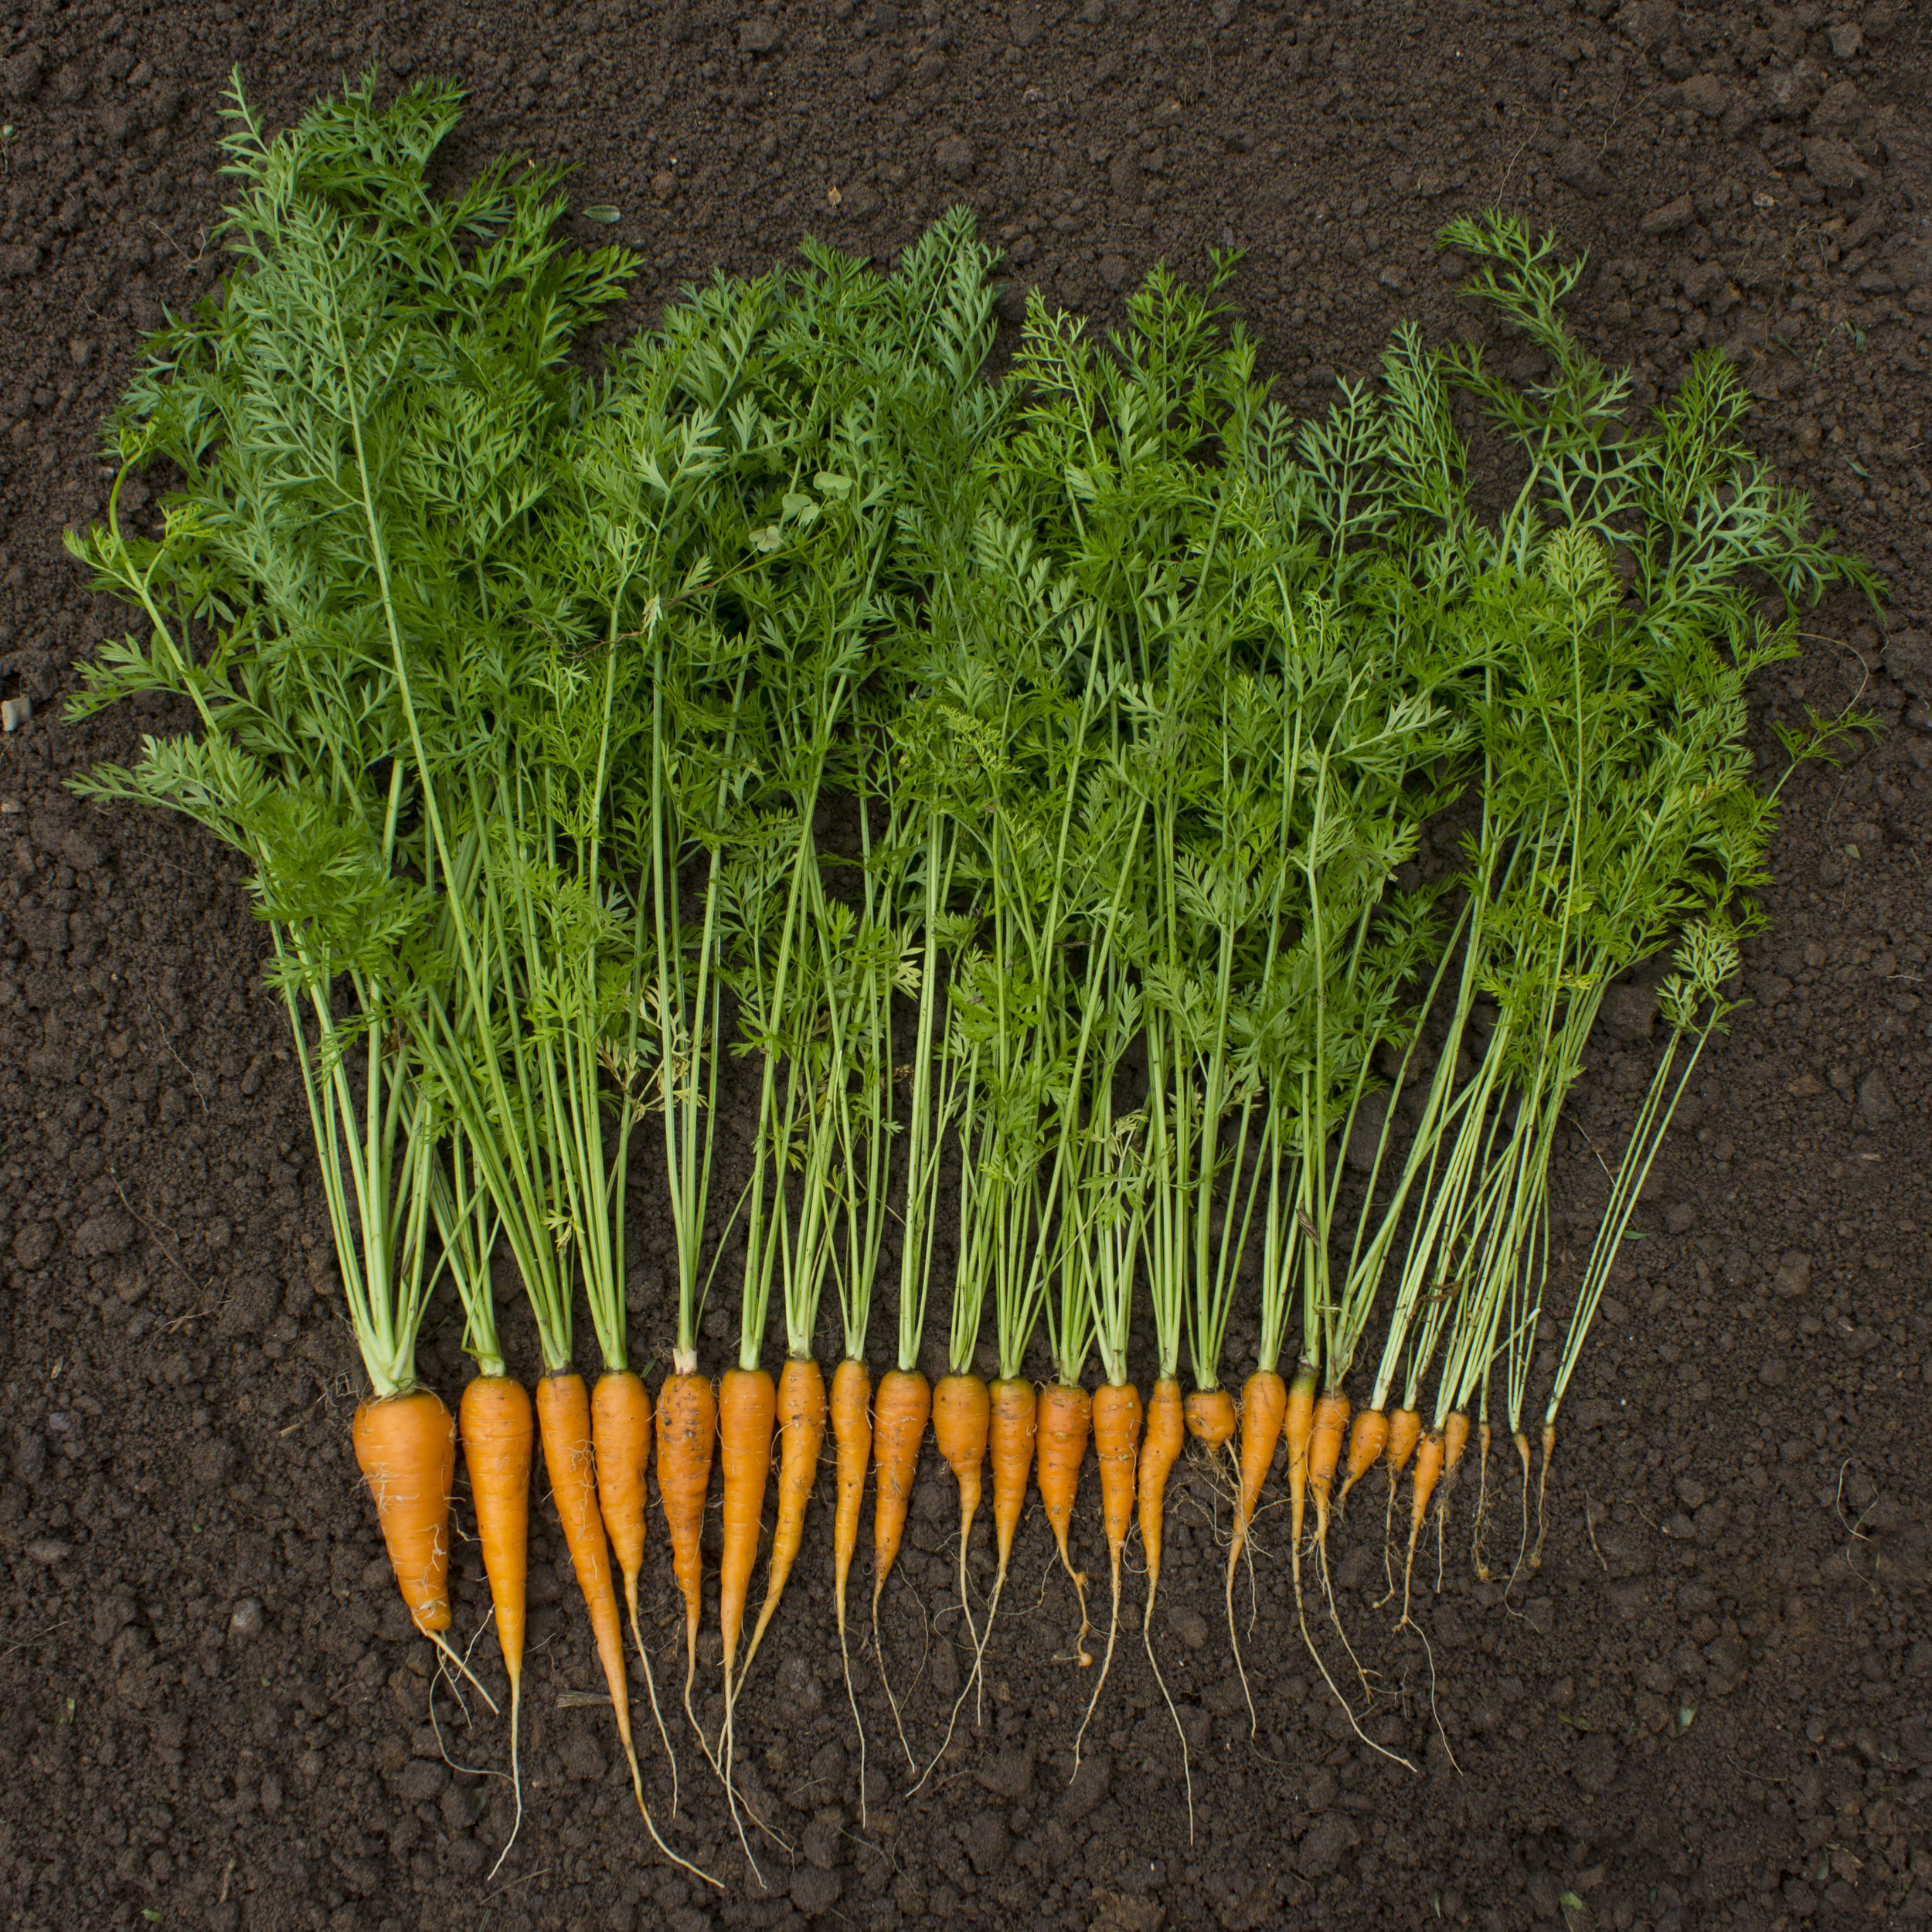 """ Carrot harvest "" by  woodleywonderworks  is licensed under  CC BY 2.0 ."